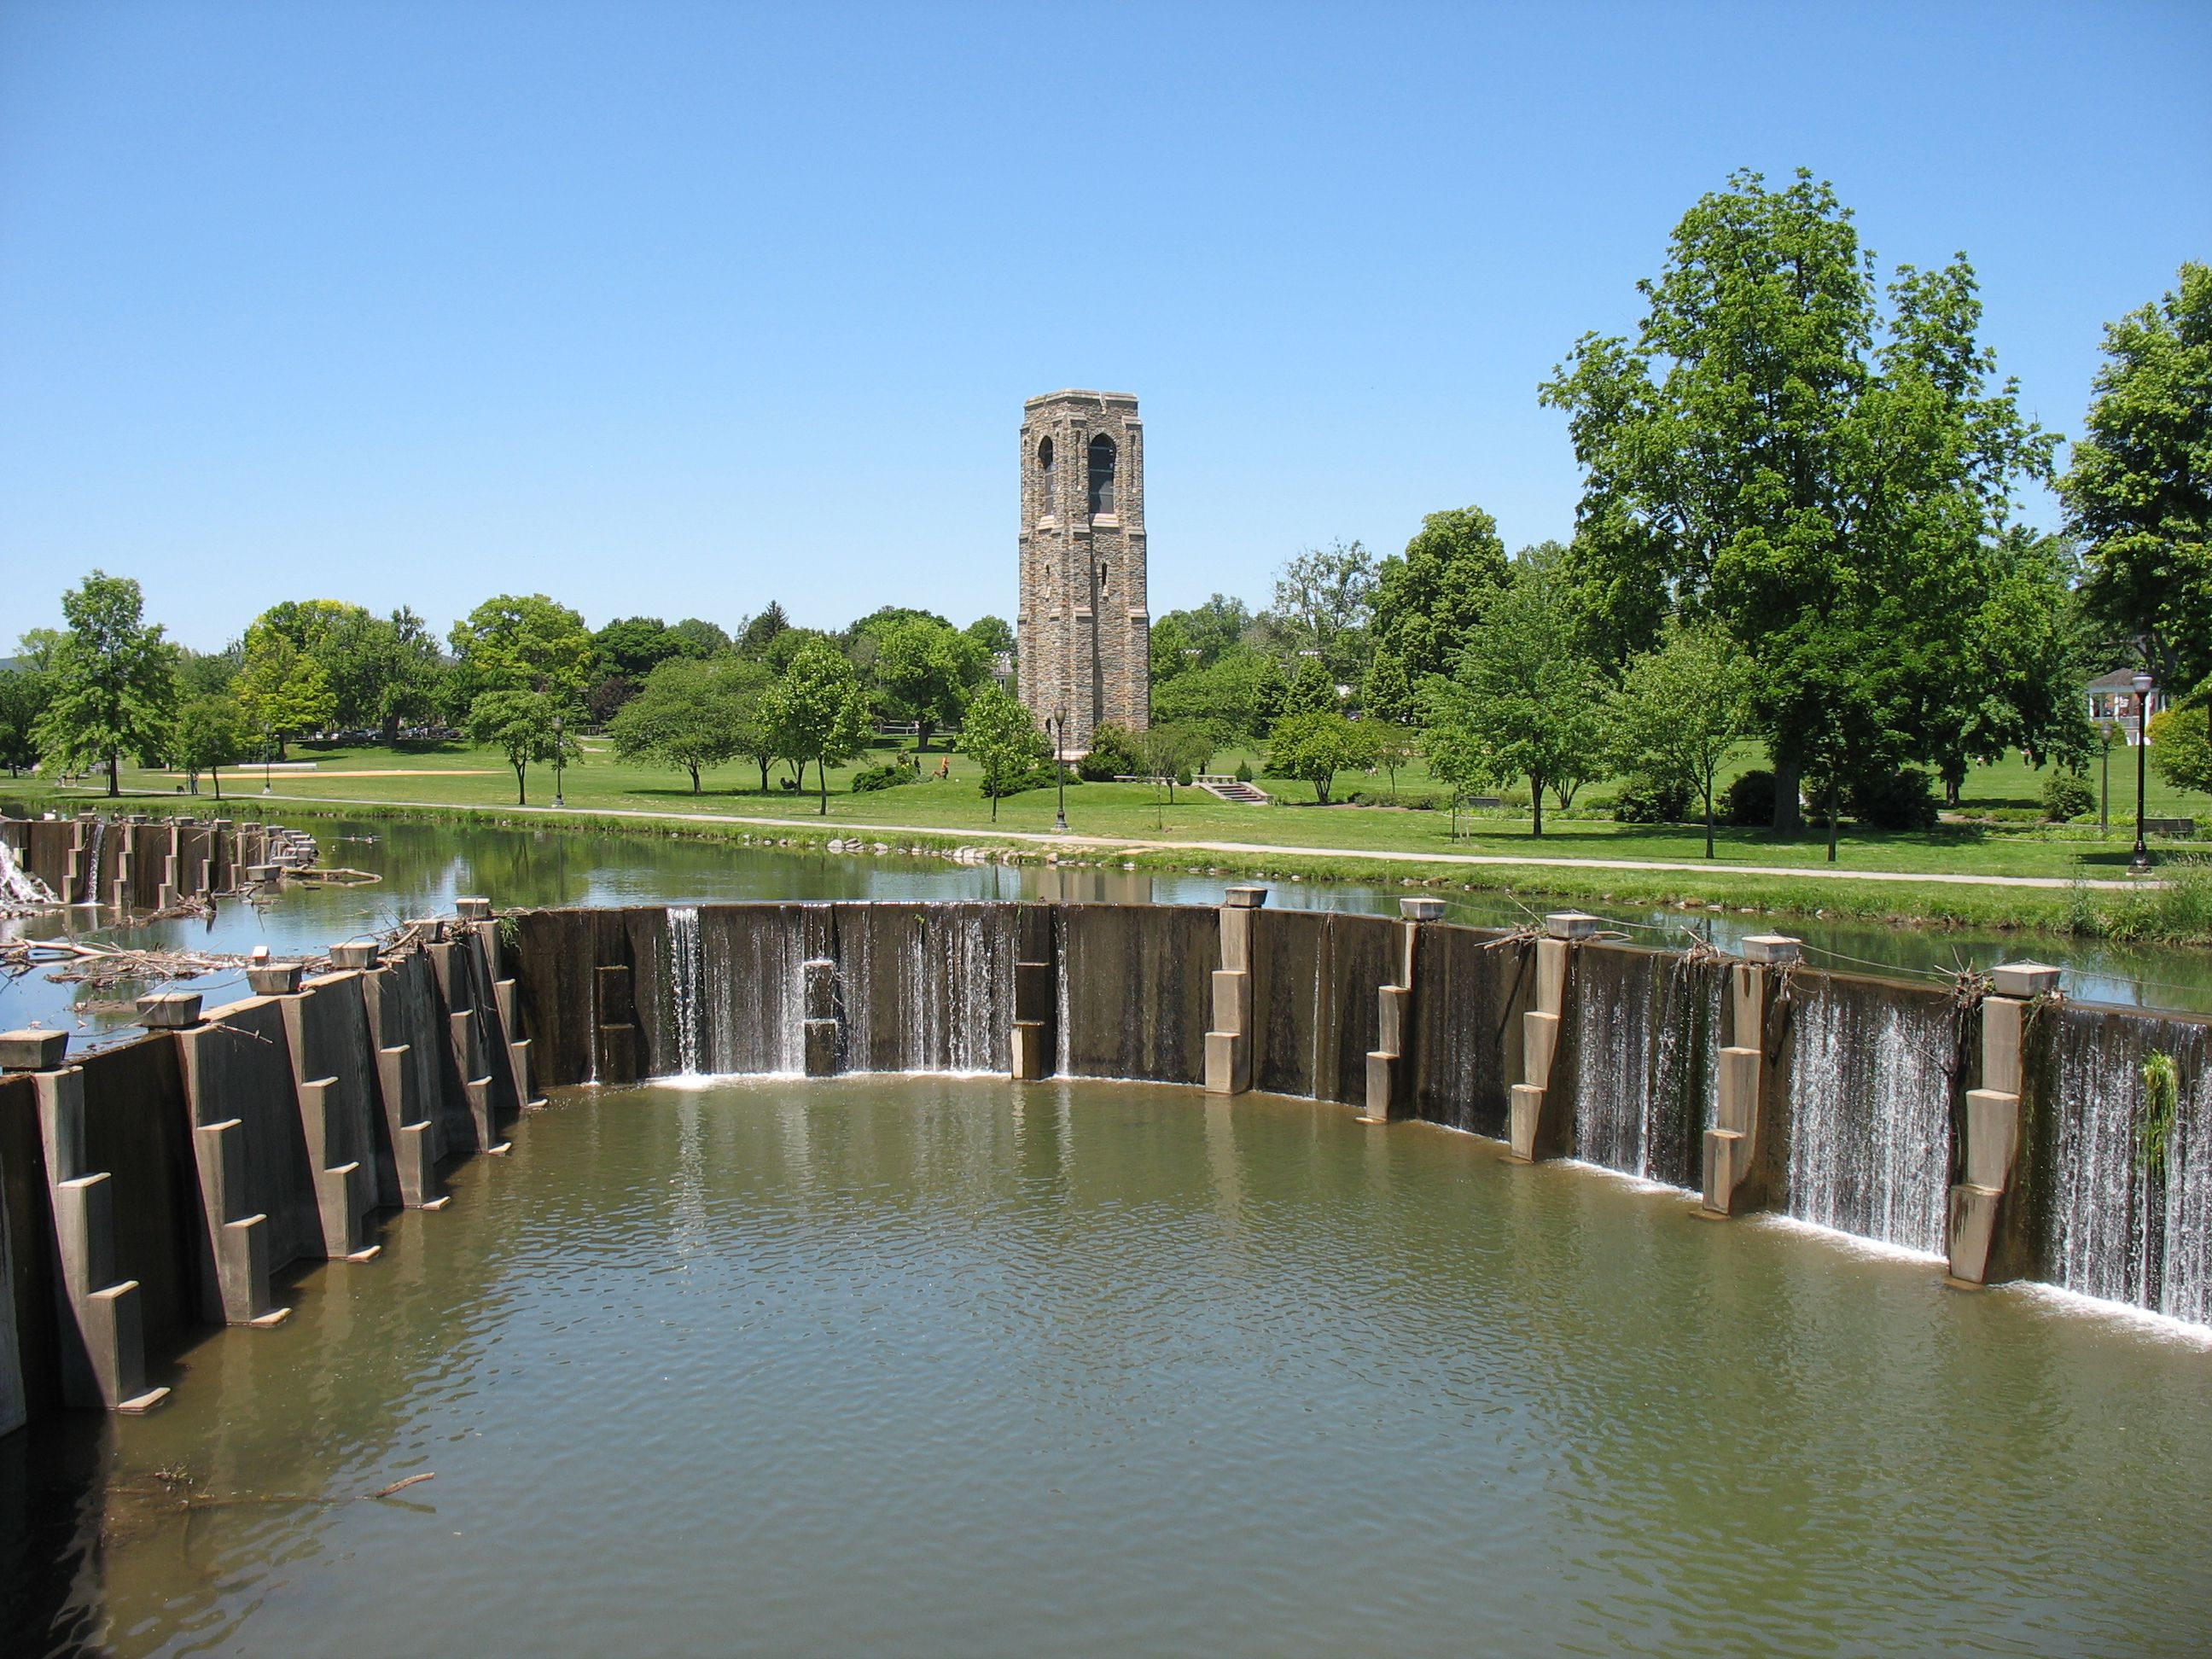 View of a pond and man-made waterfalls and a tower in Baker Park